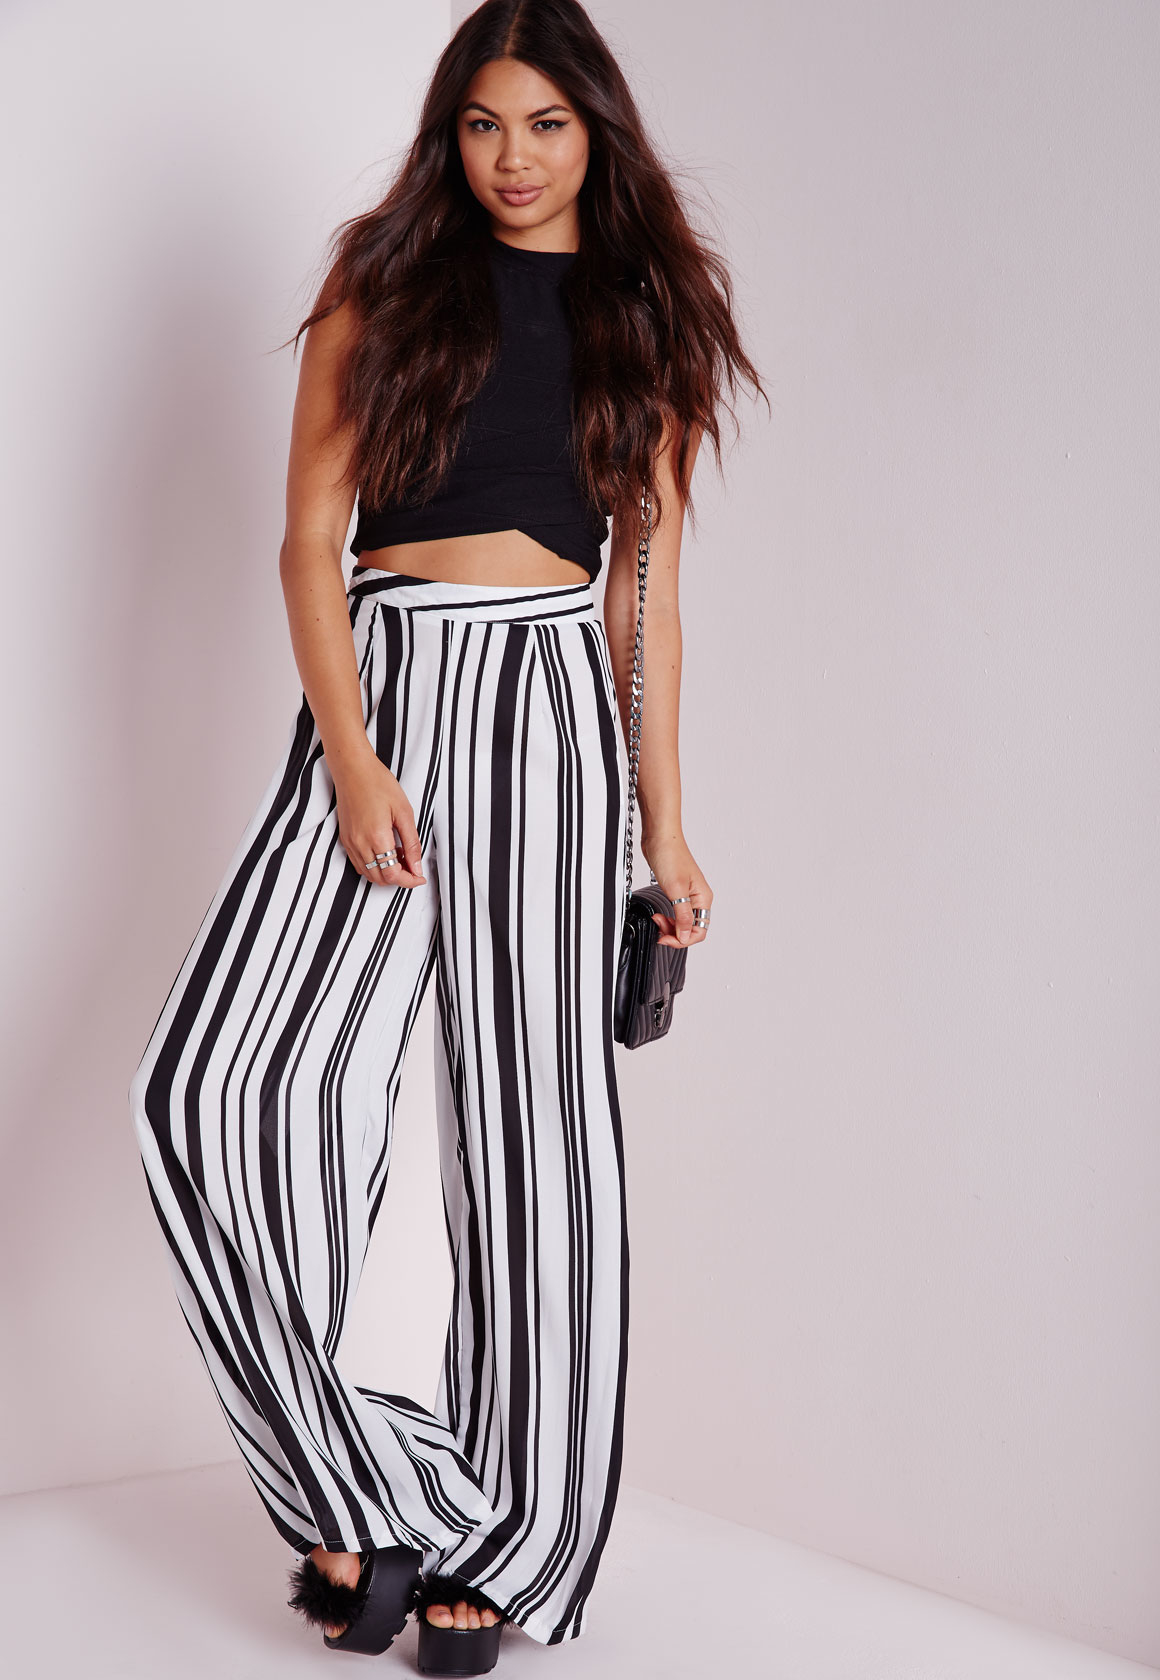 Missguided Tall Striped Wide Leg Pants Monochrome in Black   Lyst